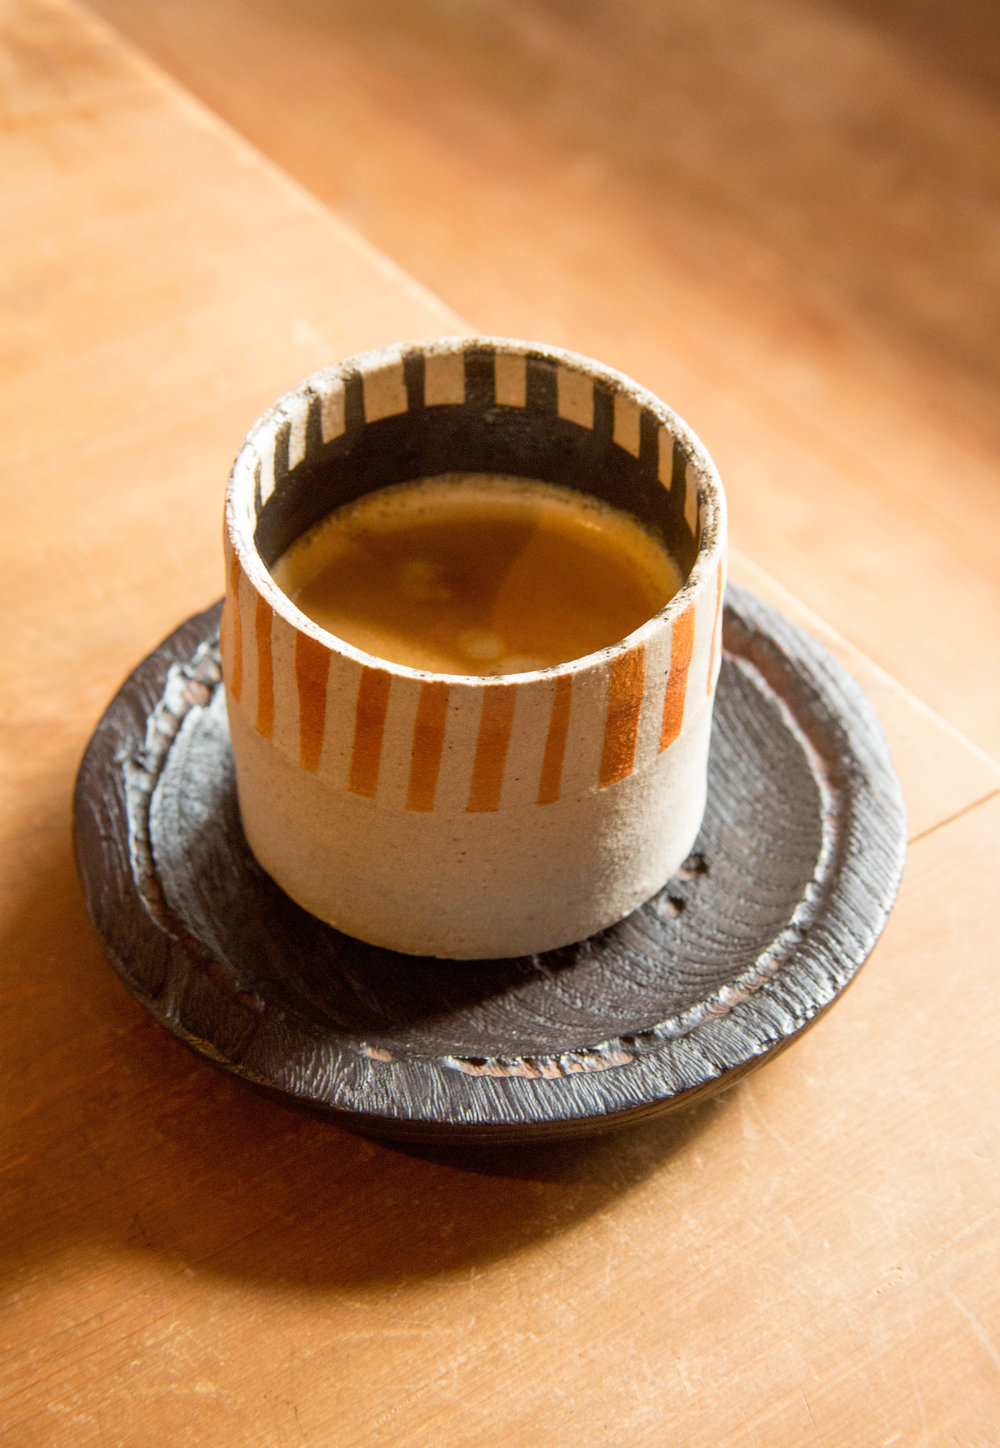 A cup of coffee served in one of Ichino's creations. ©TOKI